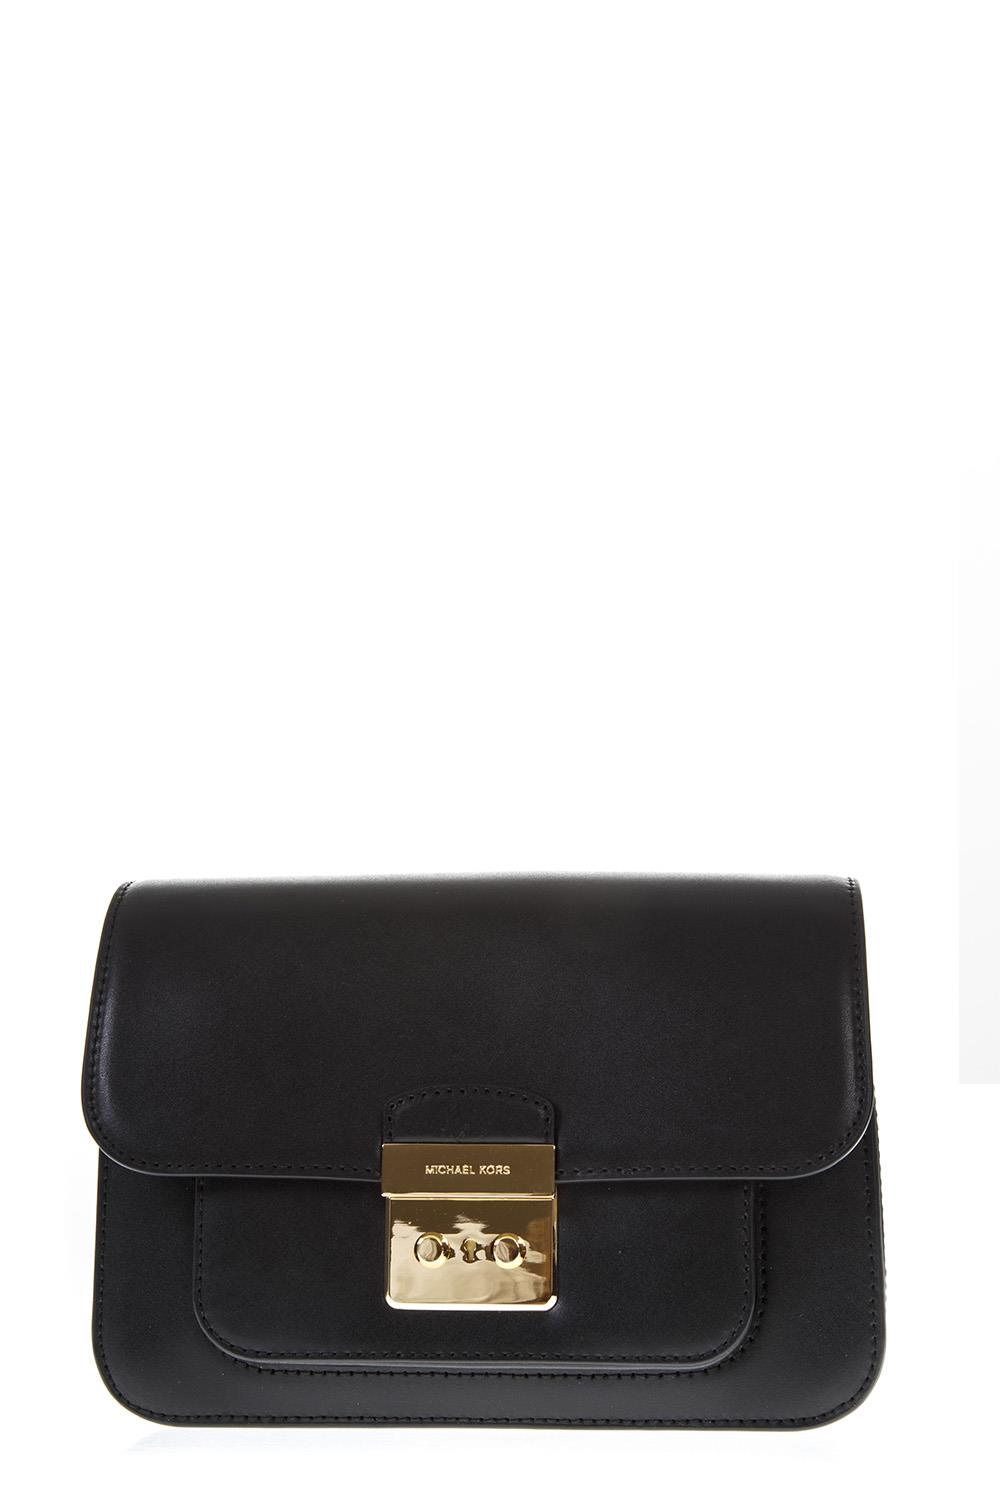 b2041372daa5 BLACK LEATHER CROSSBODY BAG SS 2019 - MICHAEL MICHAEL KORS - Boutique  Galiano